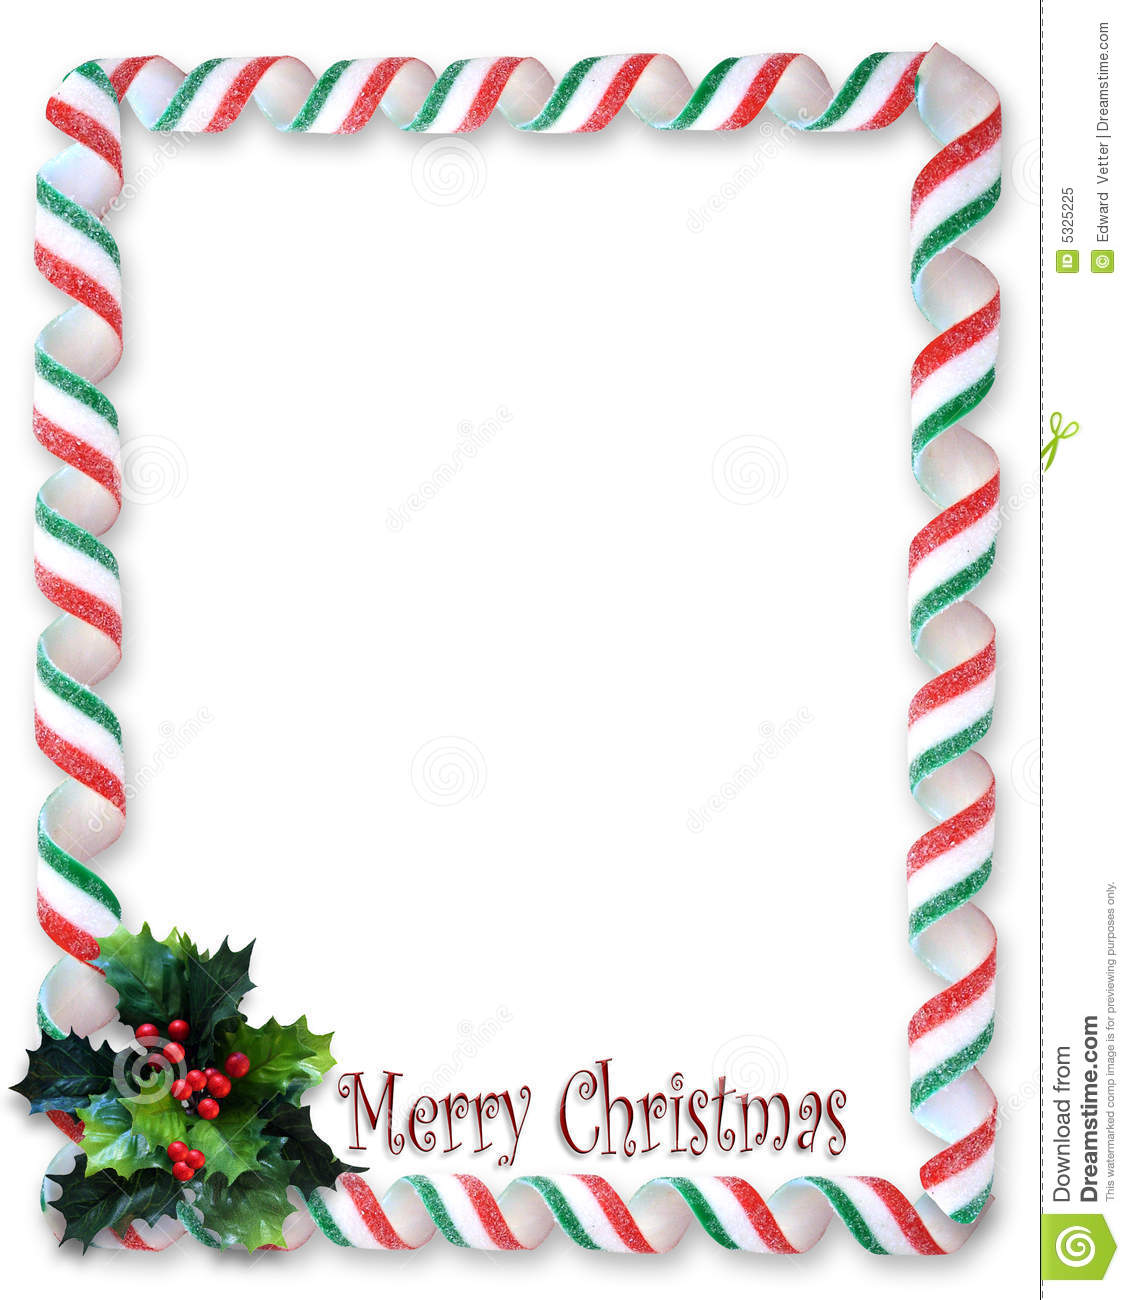 Christmas border candy ribbon and holly frame stock